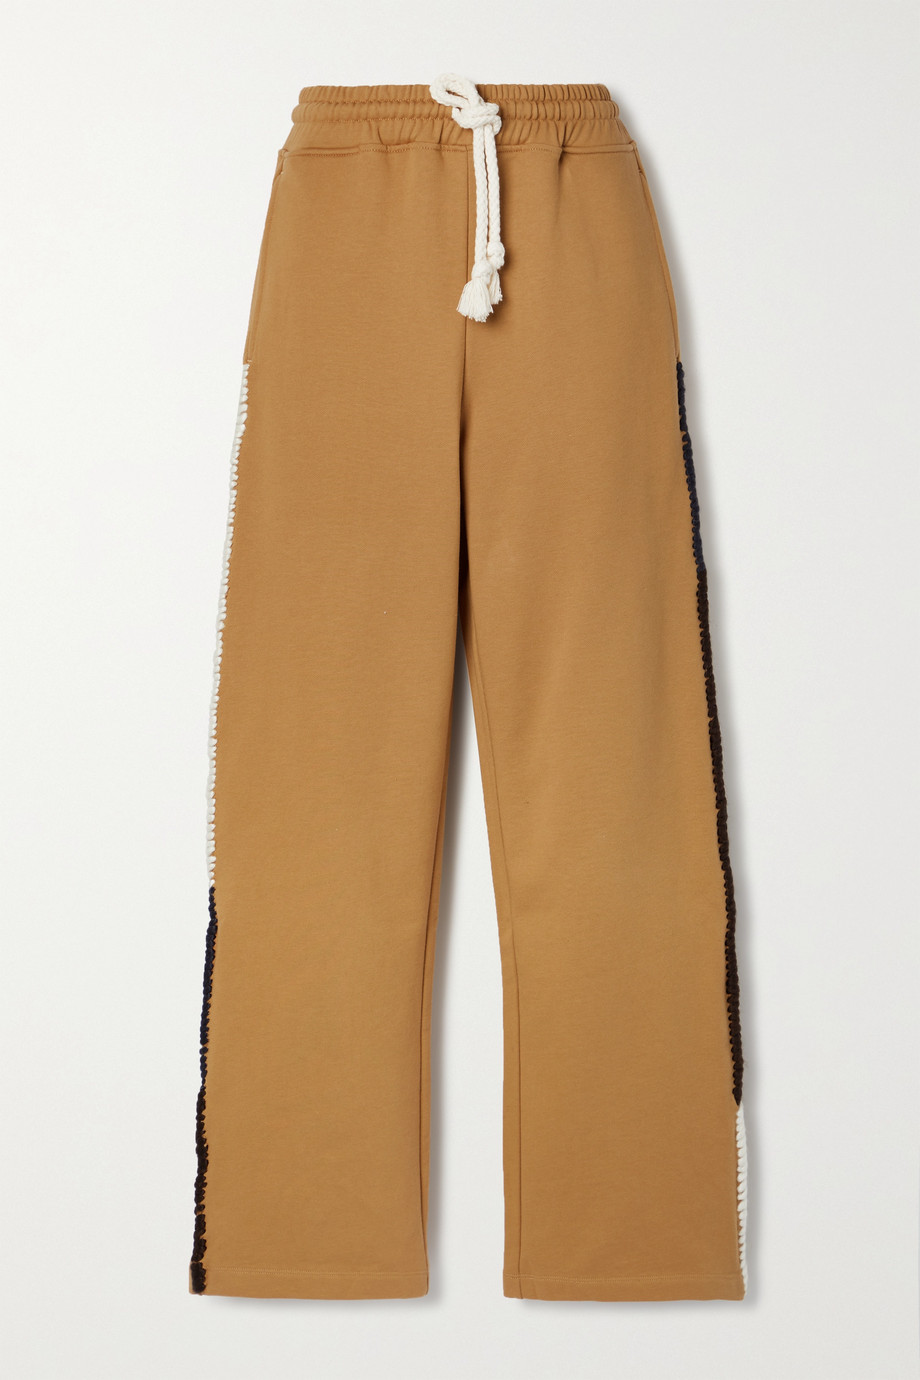 JW Anderson Embroidered cotton-jersey track pants